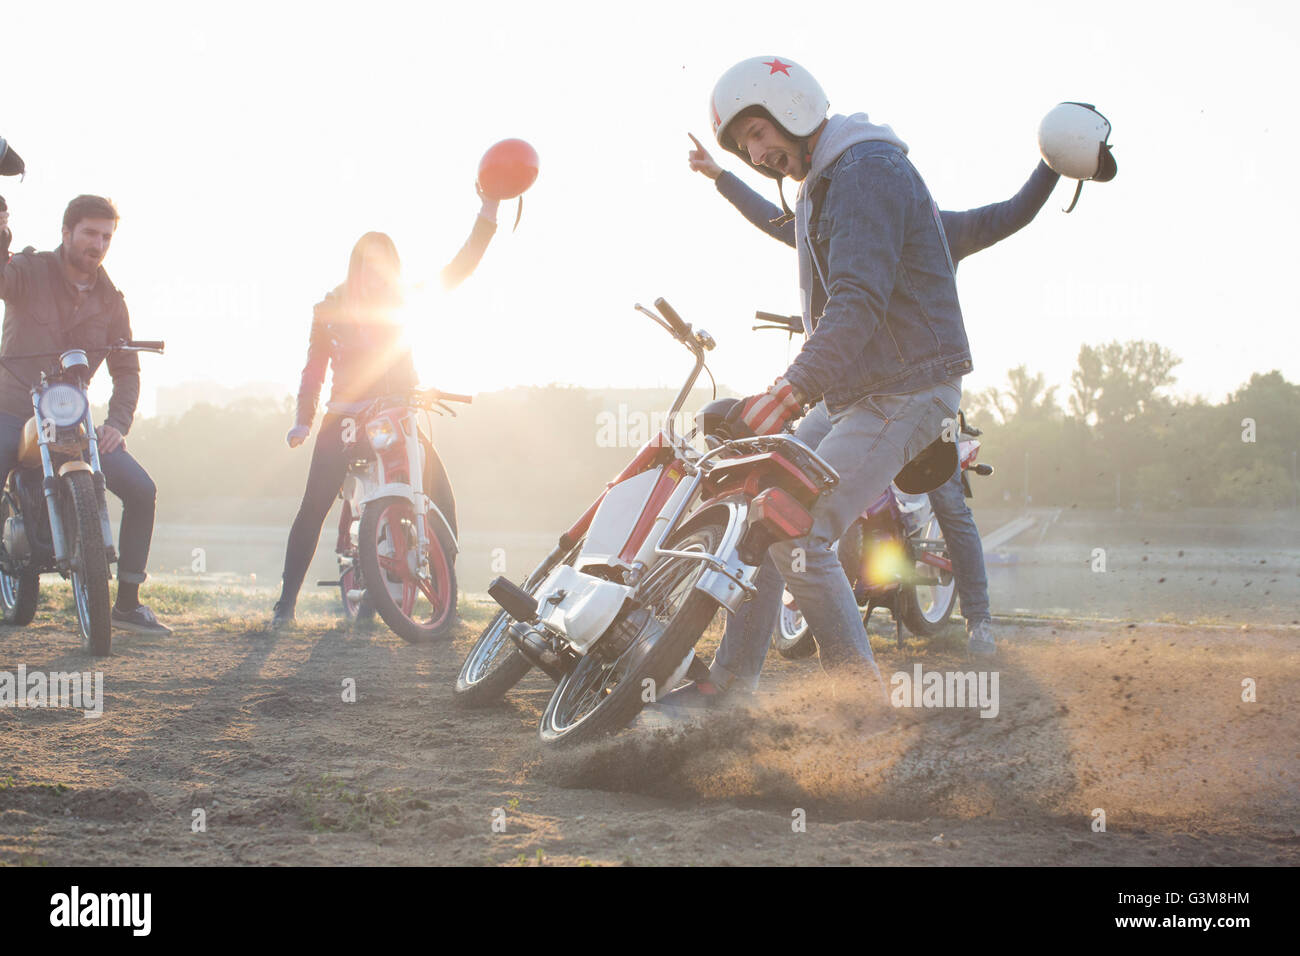 Small group of friends sitting on mopeds, holding crash helmets in air - Stock Image